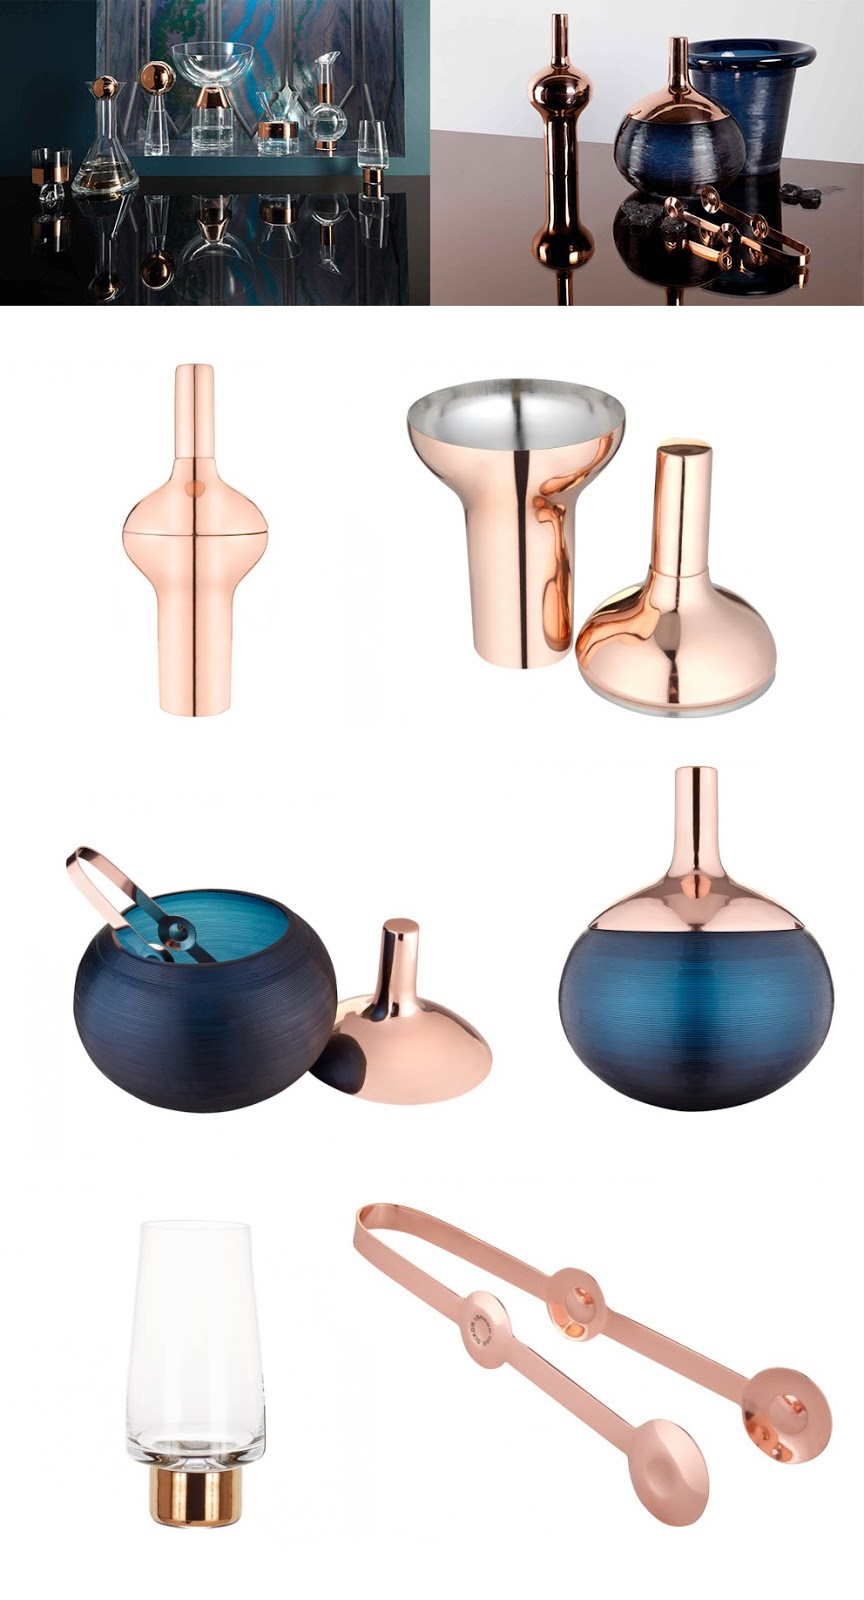 It's Fantasy House Friday and we've been having a heatwave in London, so obviously you need the most beautiful Cocktail Shaker, Ice Bucket, Tongs and High Ball Glasses you can find, right? All courtesy of Tom Dixon's Plum and Tank ranges.